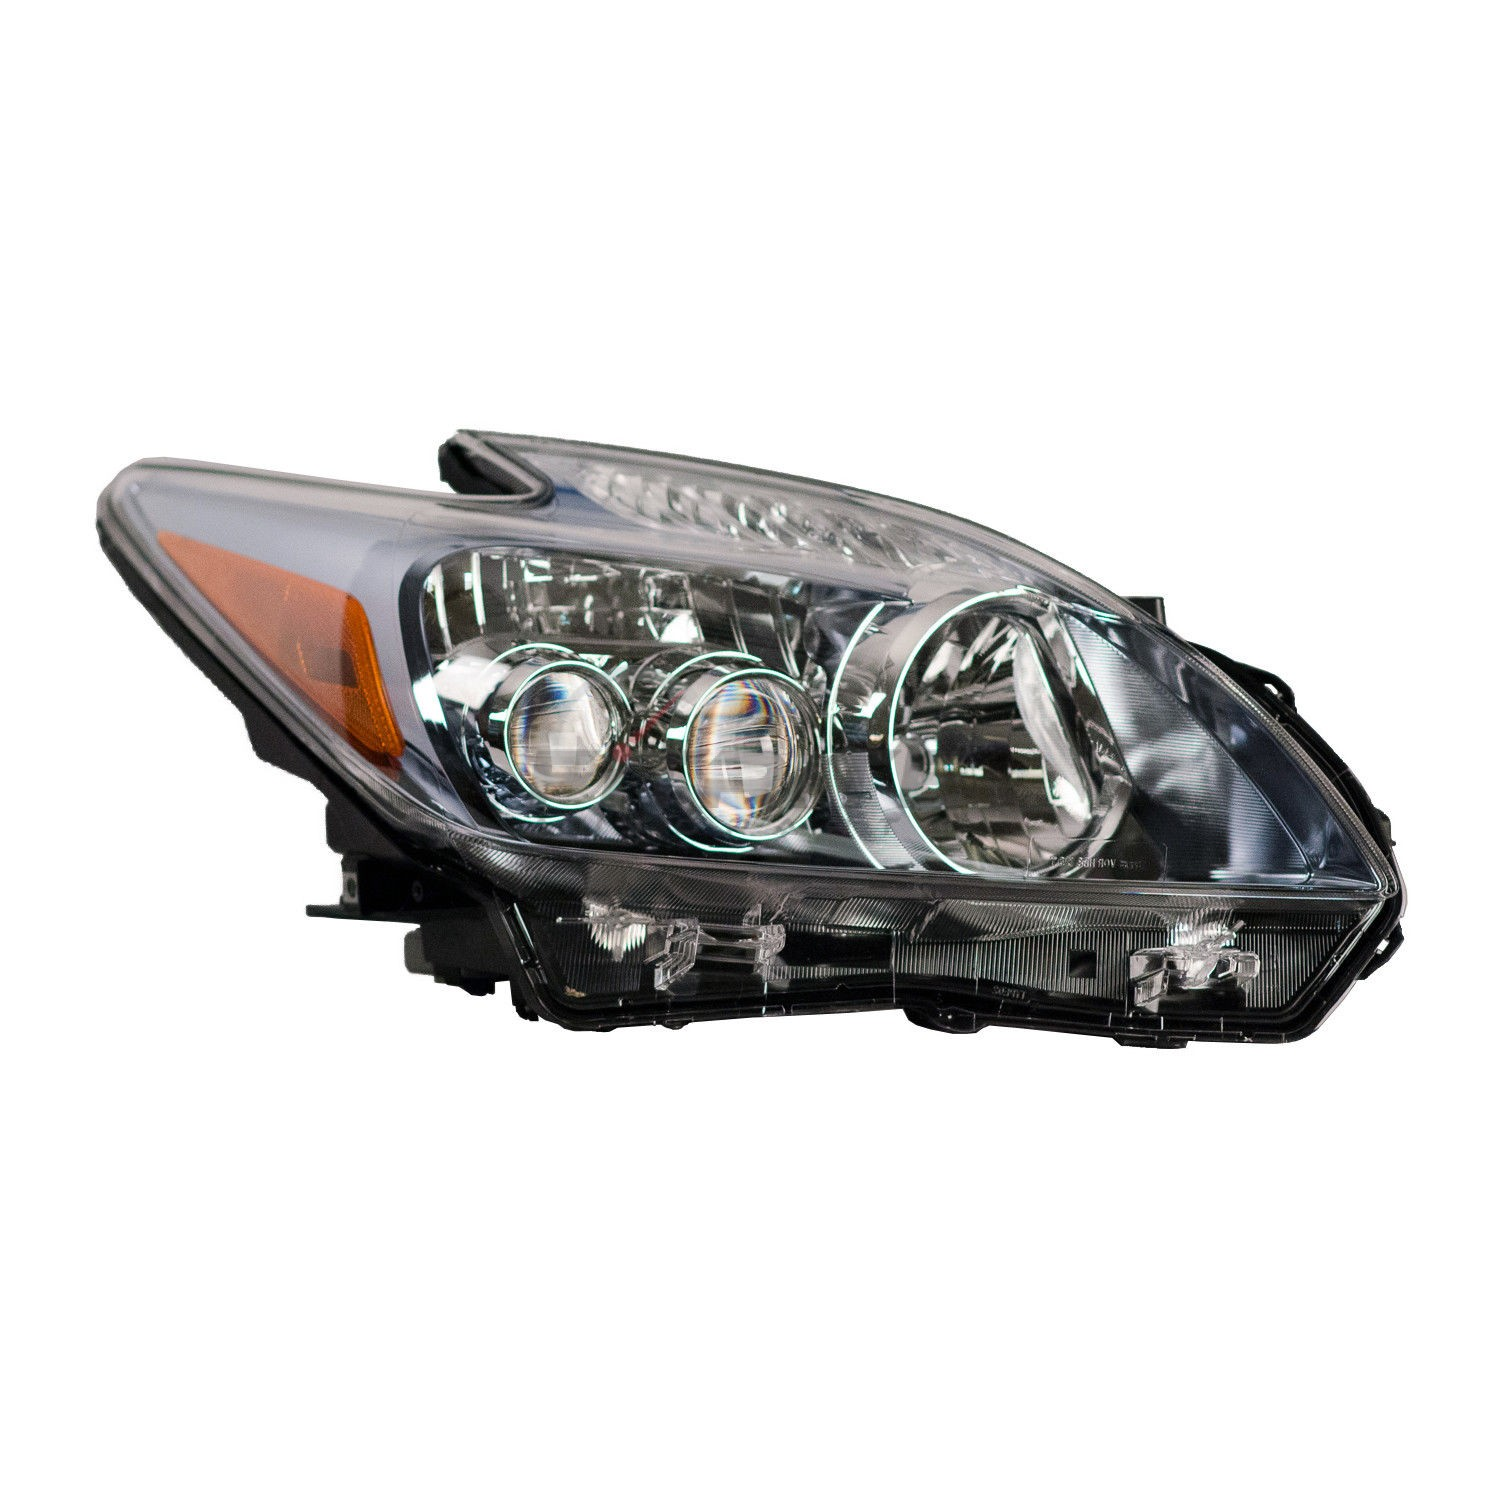 Details About New Right Headlight Embly Led Bulbs For 2010 2017 Toyota Prius To2519140